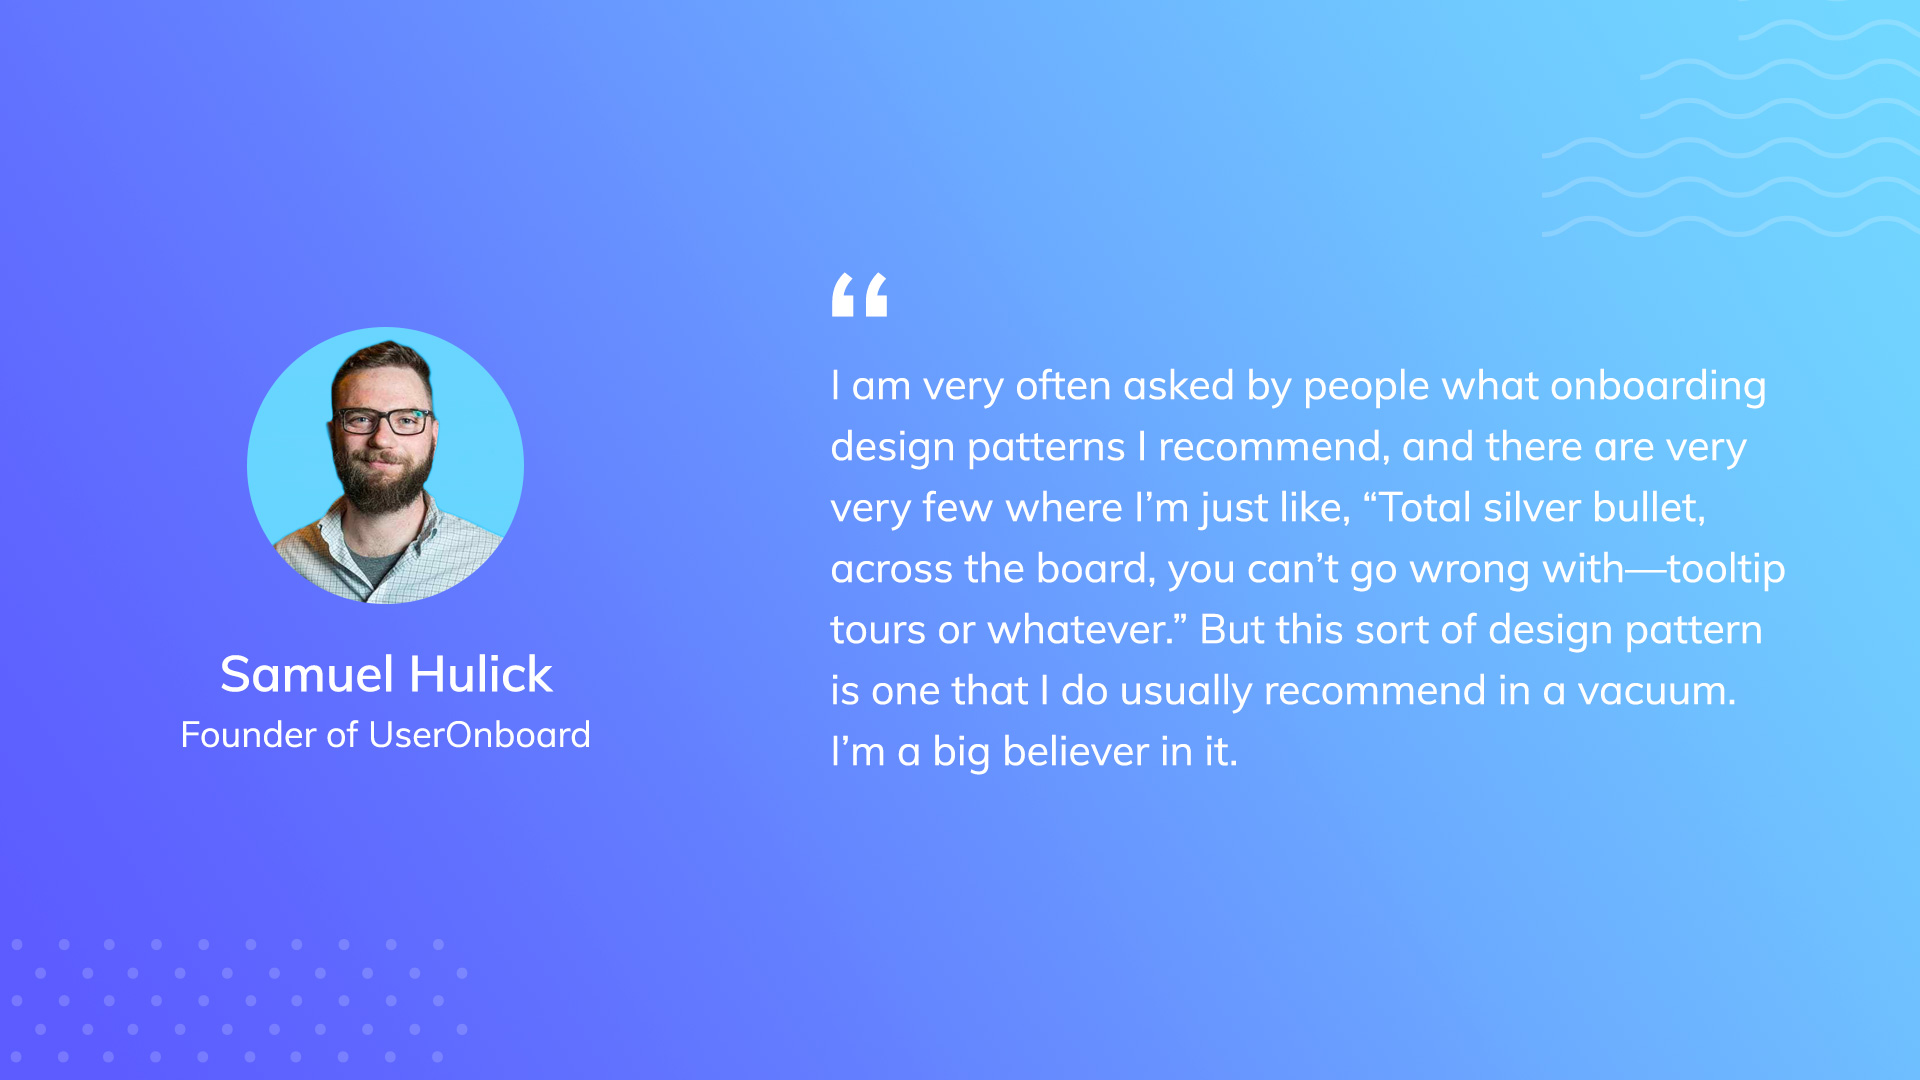 """A quote from Samuel Hulick, Founder of UserOnboard. He says, """"I am very often asked by people what on boarding design patterns I recommend, and there are very few where I'm just like, 'total silver bullet, across the board, you can't go wrong with—tooltip tours or whatever.' But this sort of design pattern is one that I do usually recommend in a vacuum. I'm a big believer in it."""""""